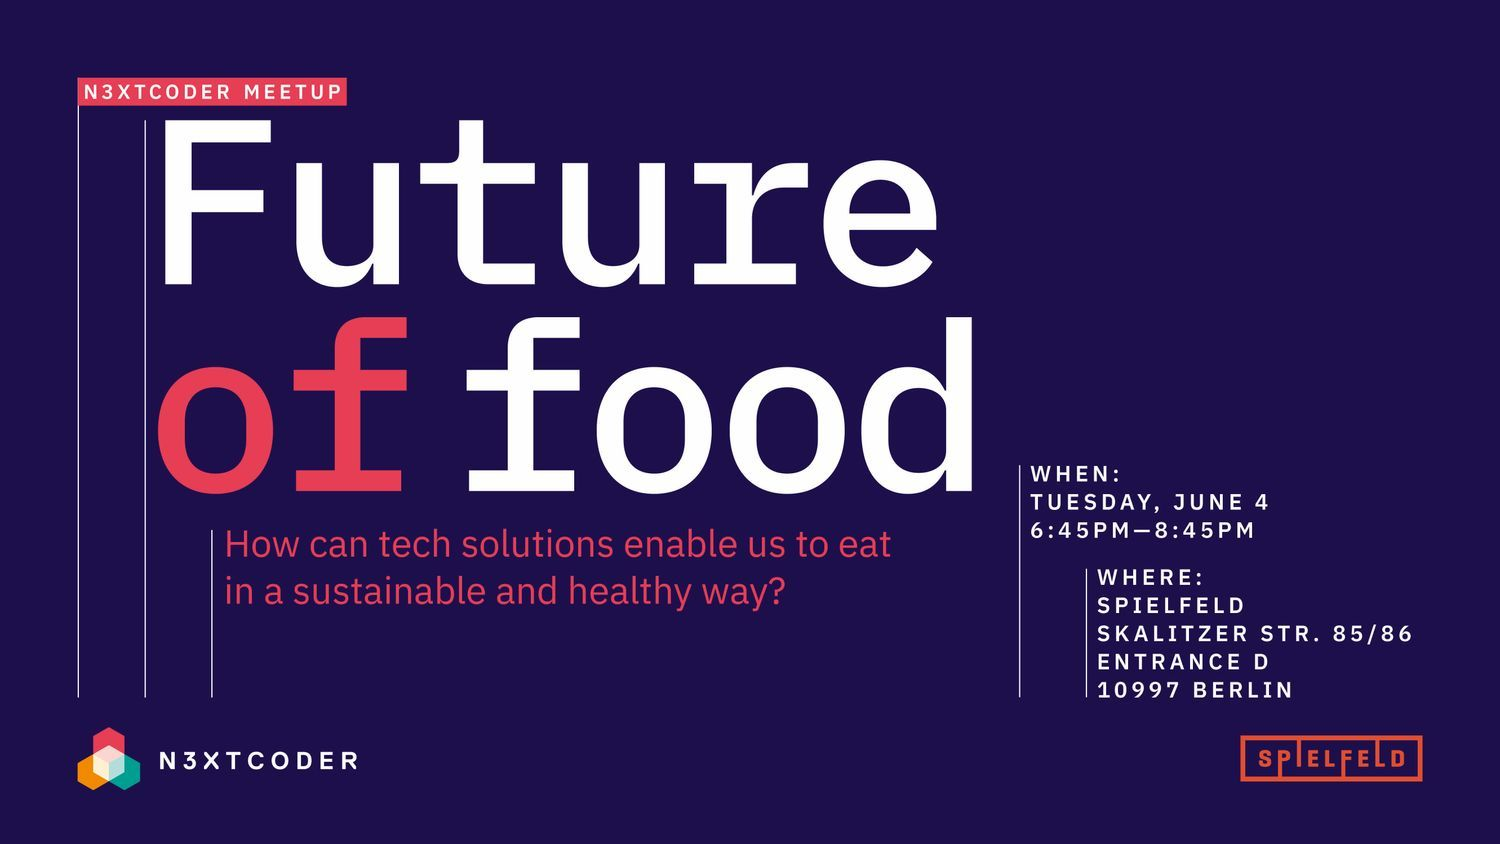 N3XTCODER Meetup - Future of Food